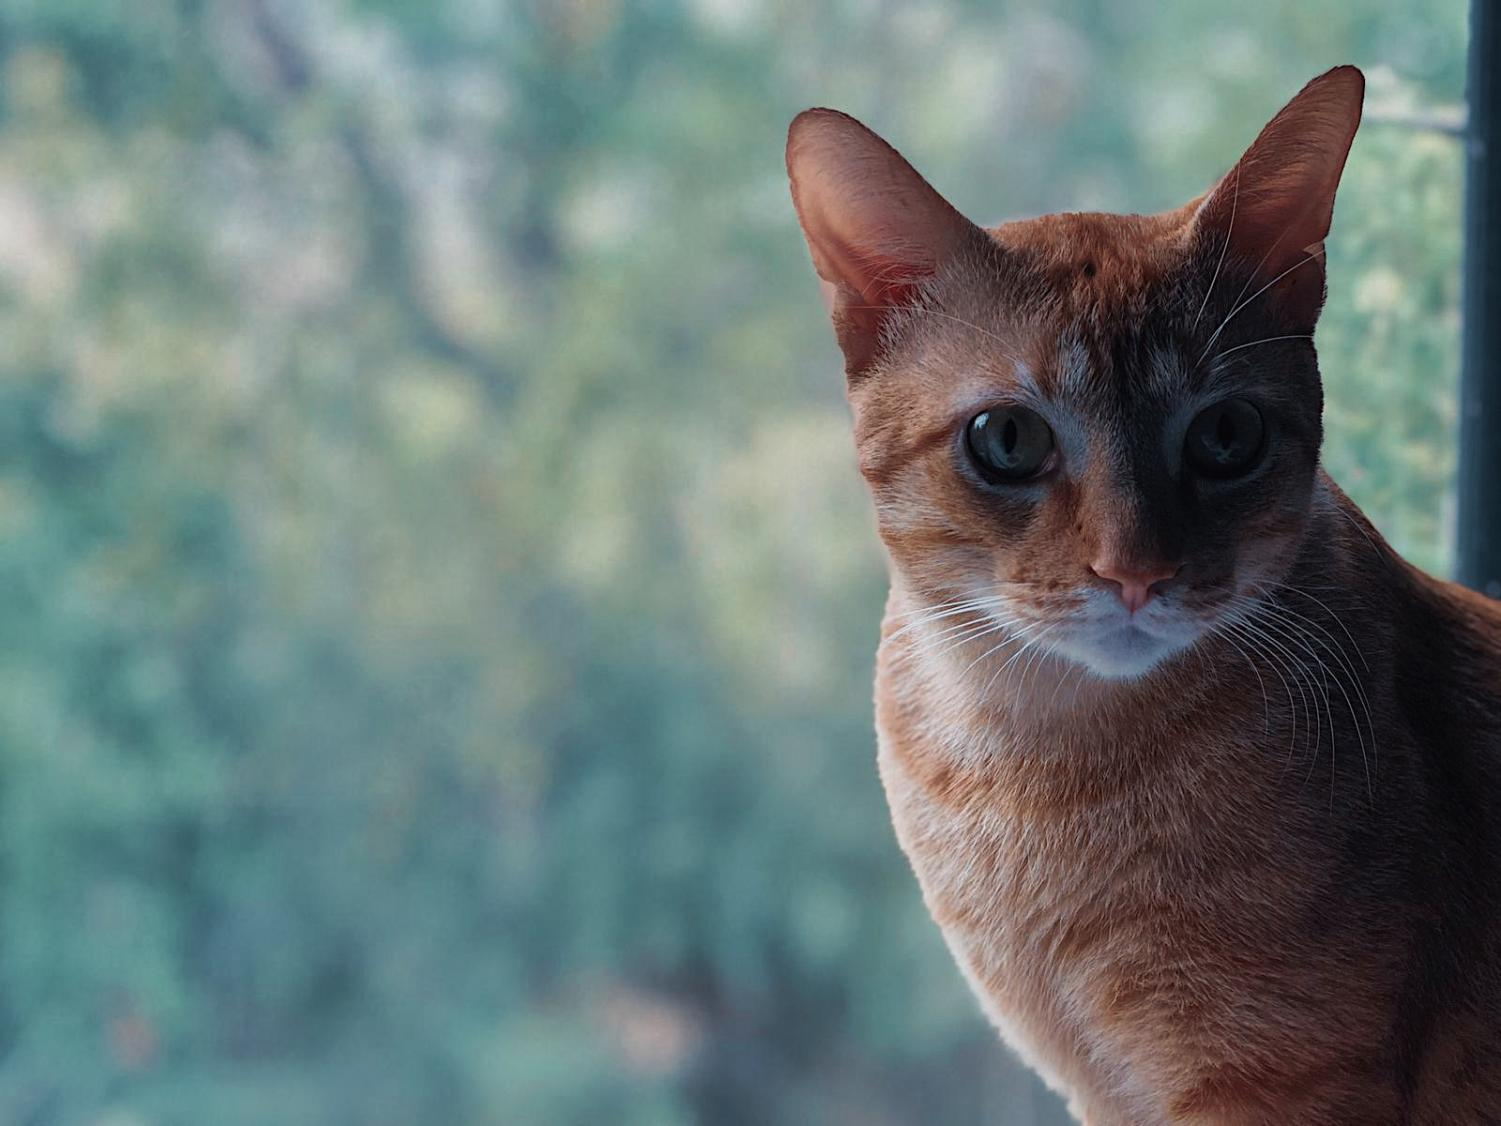 A rescued cat looking out into the distance. (Photo editing provided by Javier Martinez.)